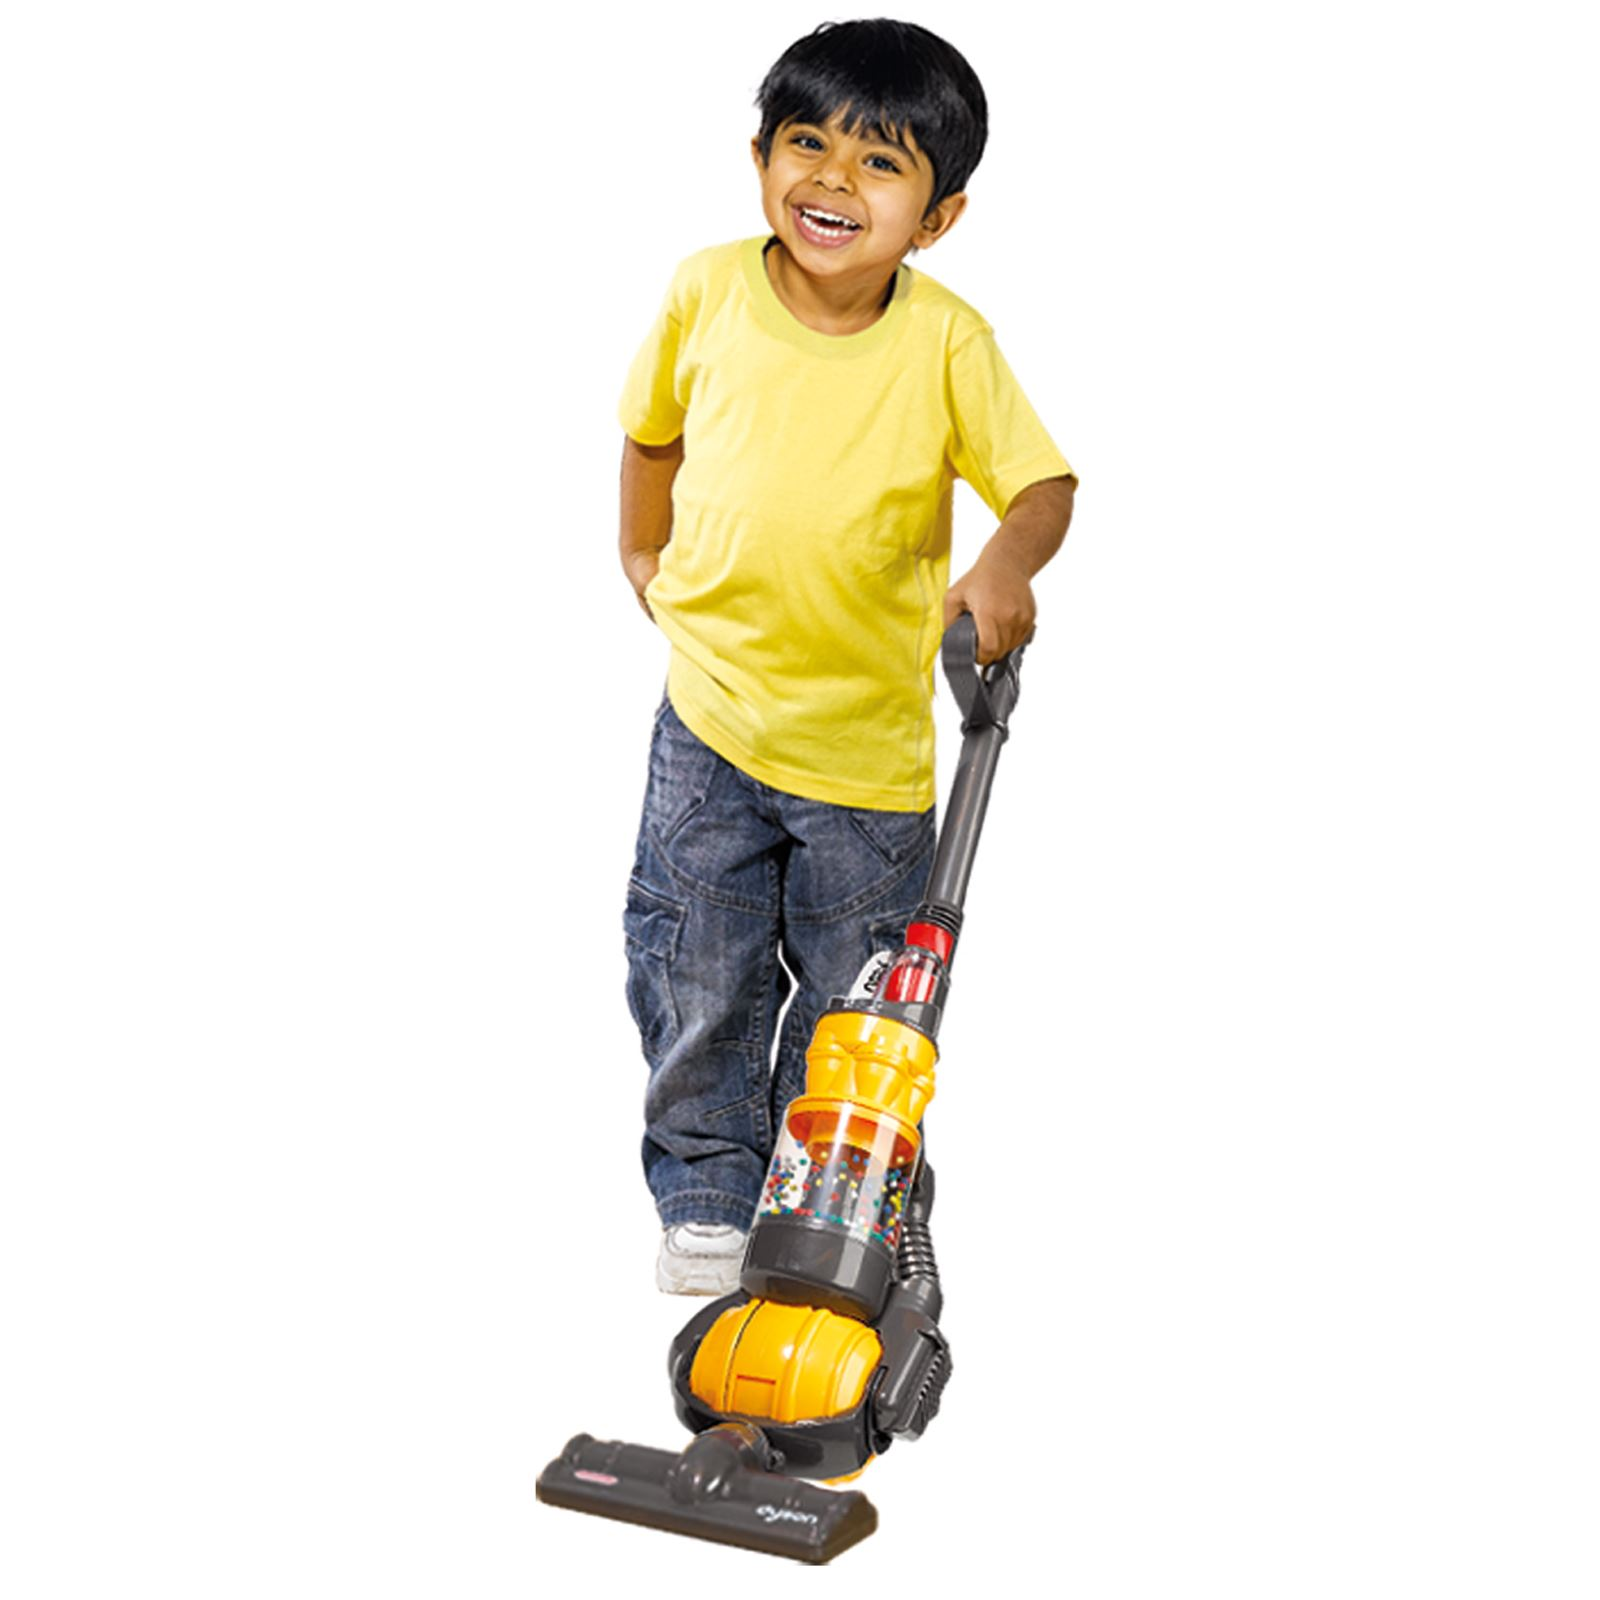 Indexbild 5 - KIDS VACUUM CLEANERS - LITTLE HENRY HETTY DYSON - KIDS CHILDRENS ROLE PLAY